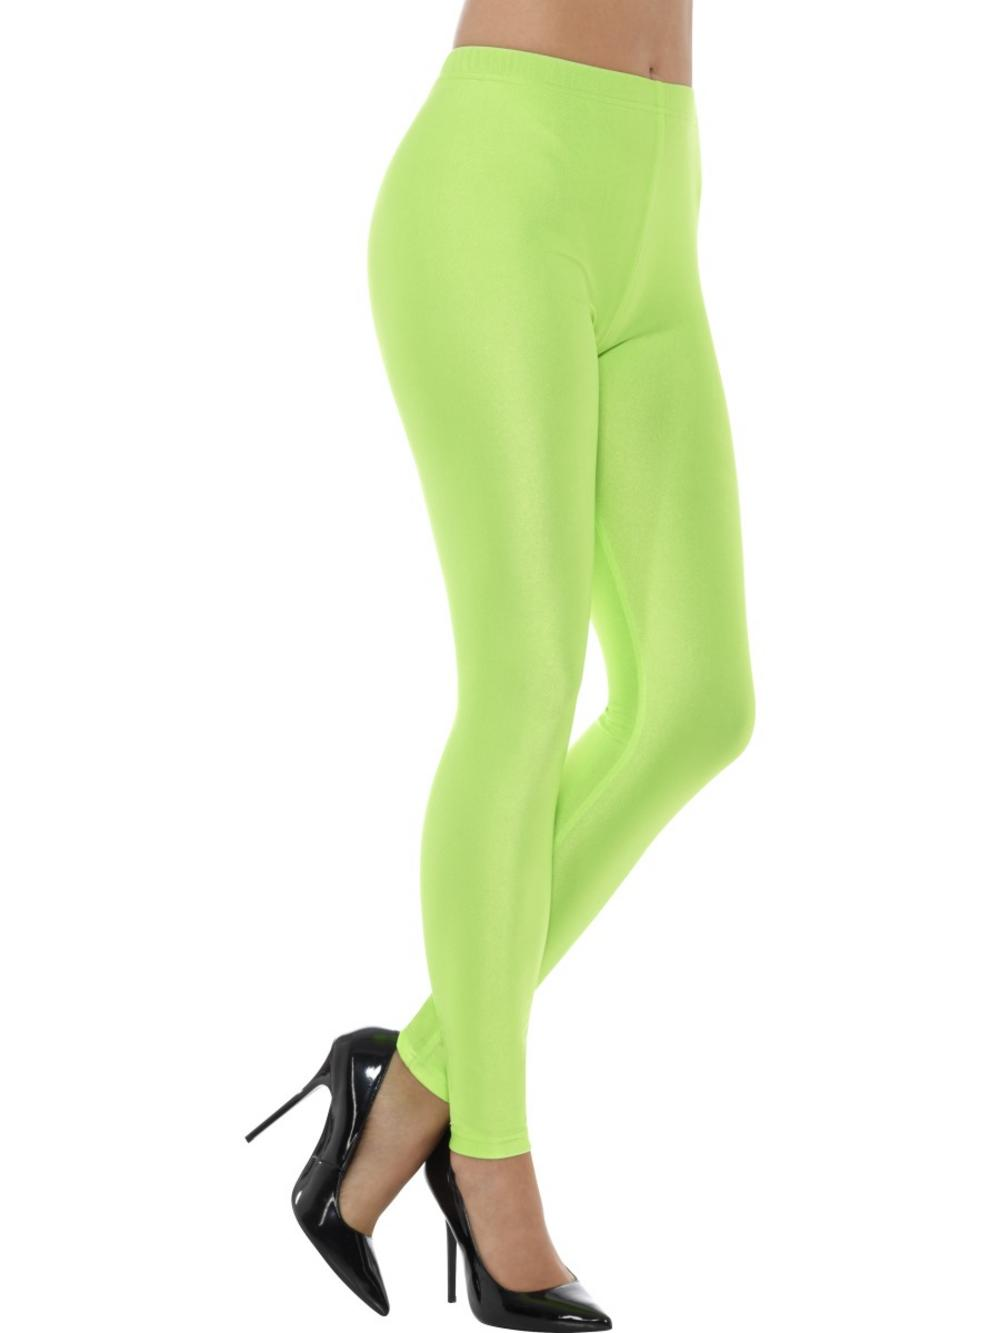 Neon Green 80s Disco Spandex Leggings